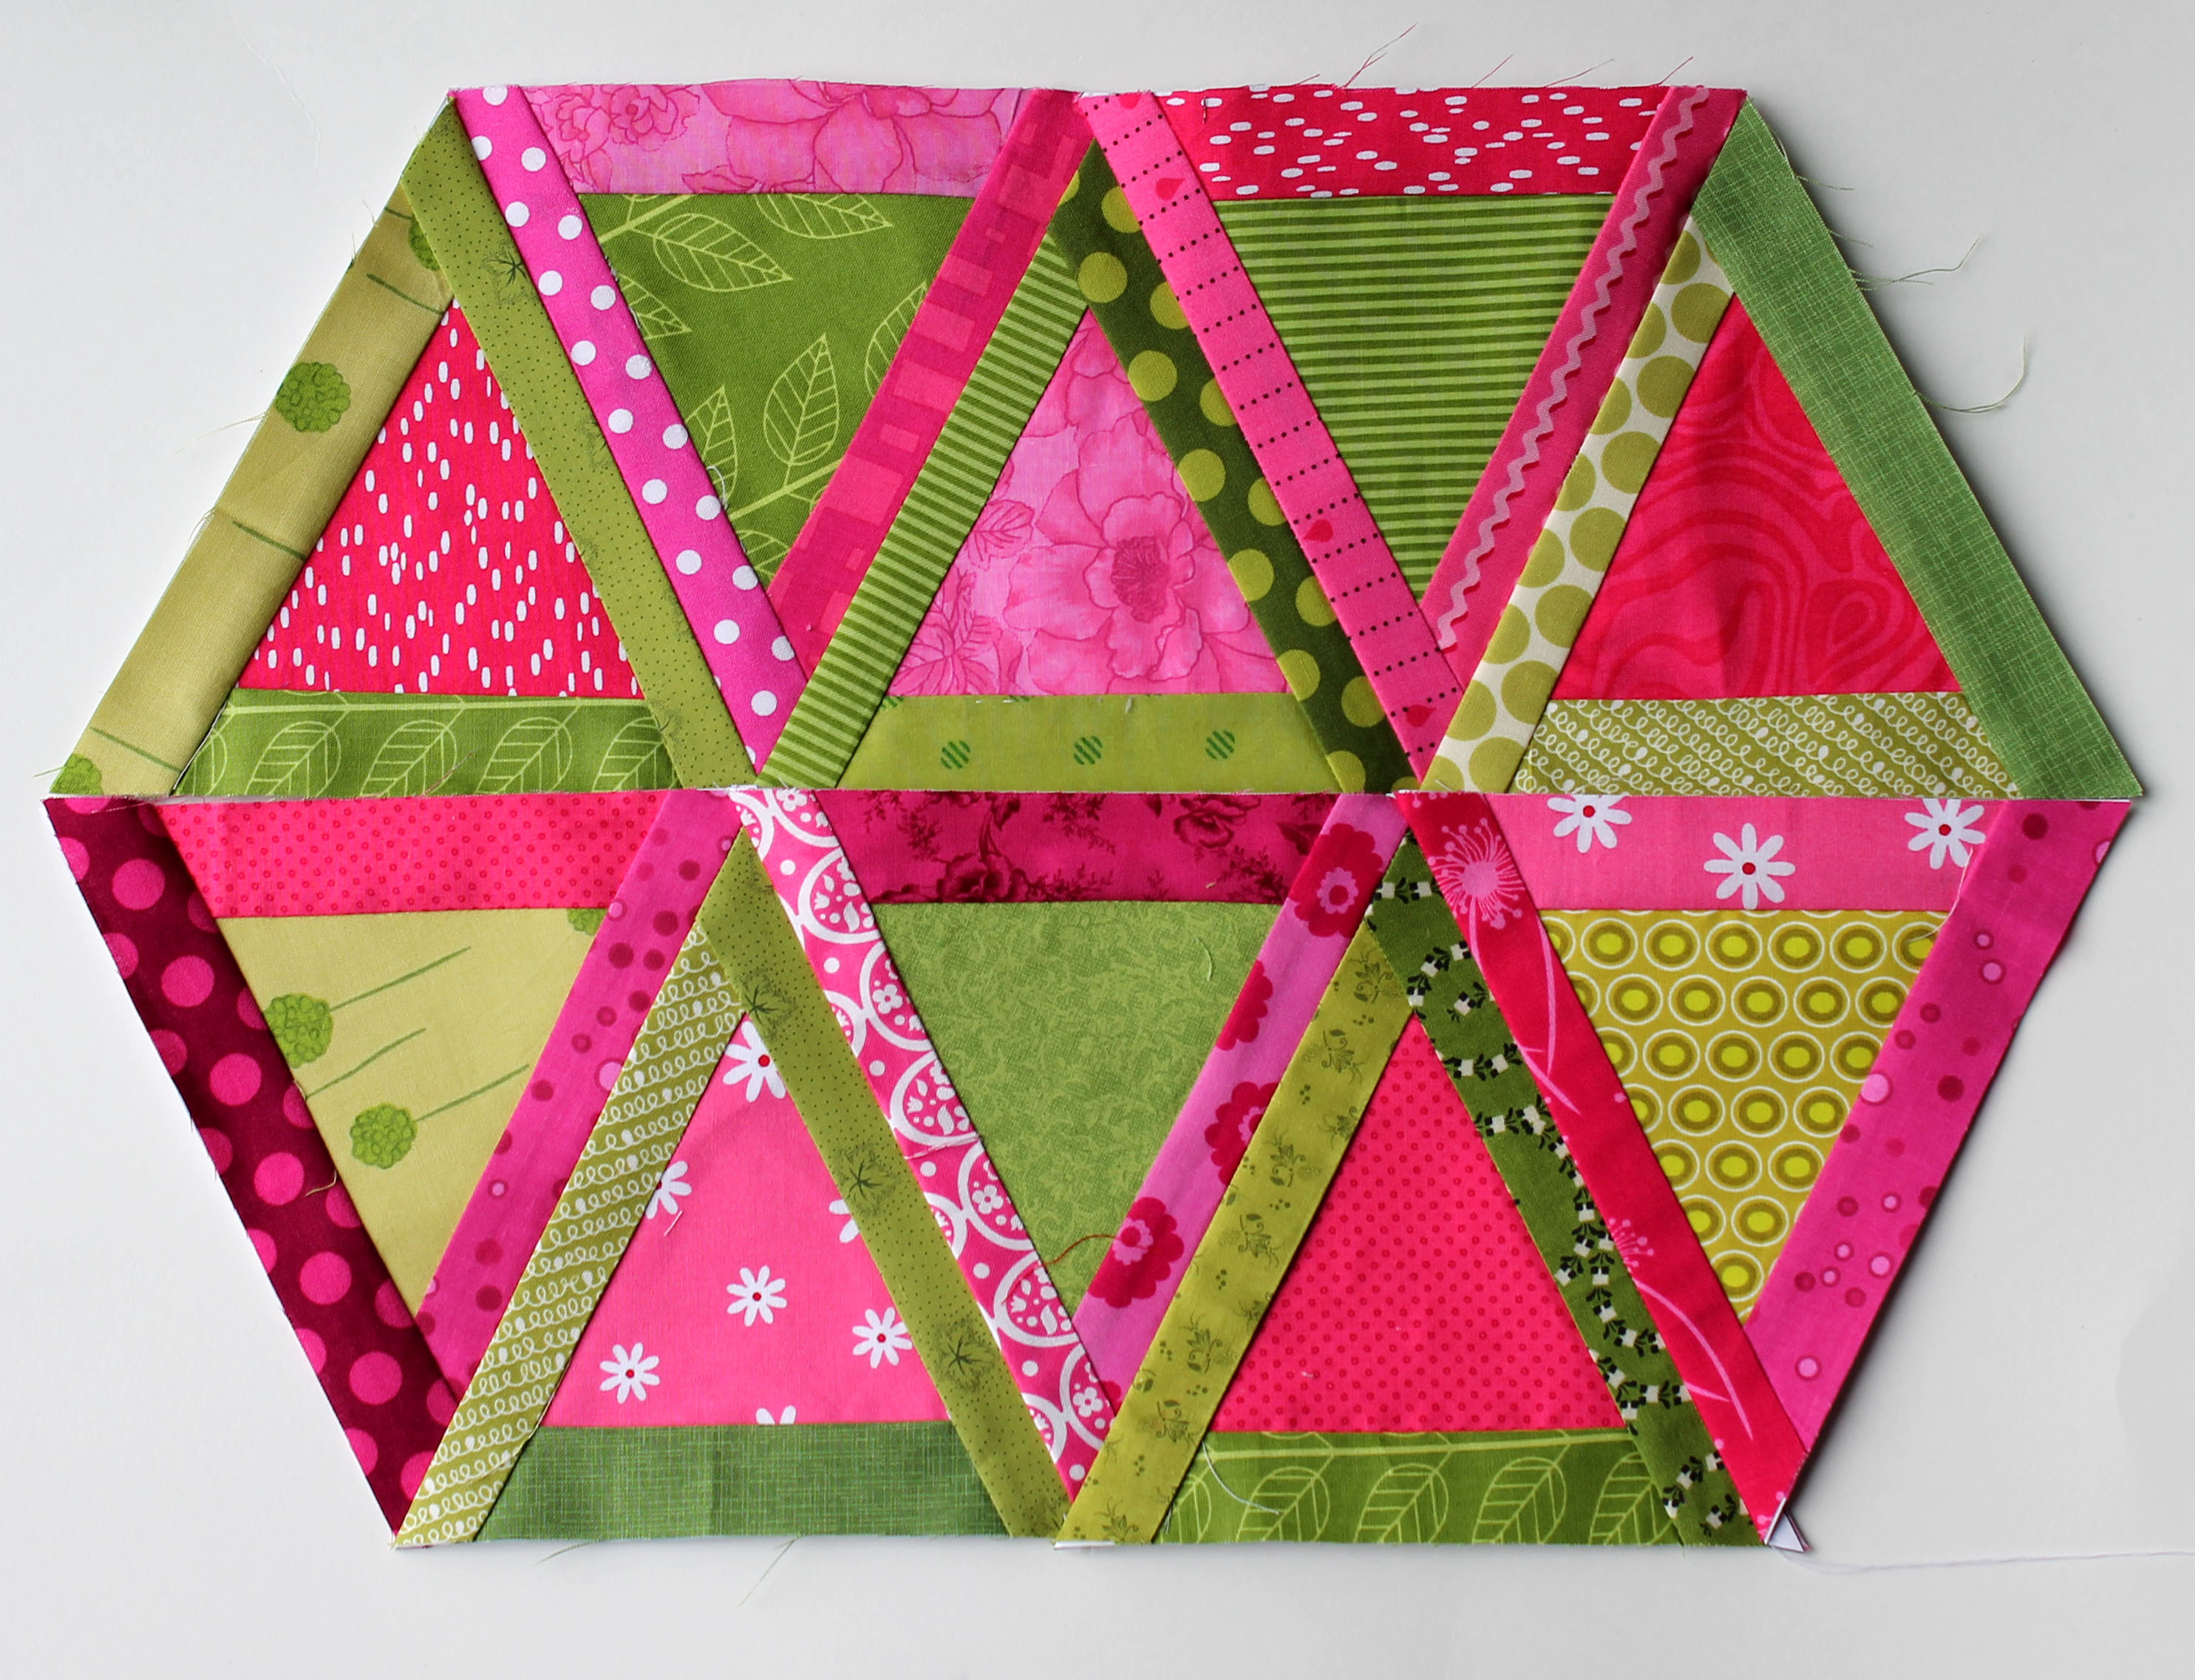 Quilt Designs With Triangles : triangle quilt block WOMBAT QUILTS